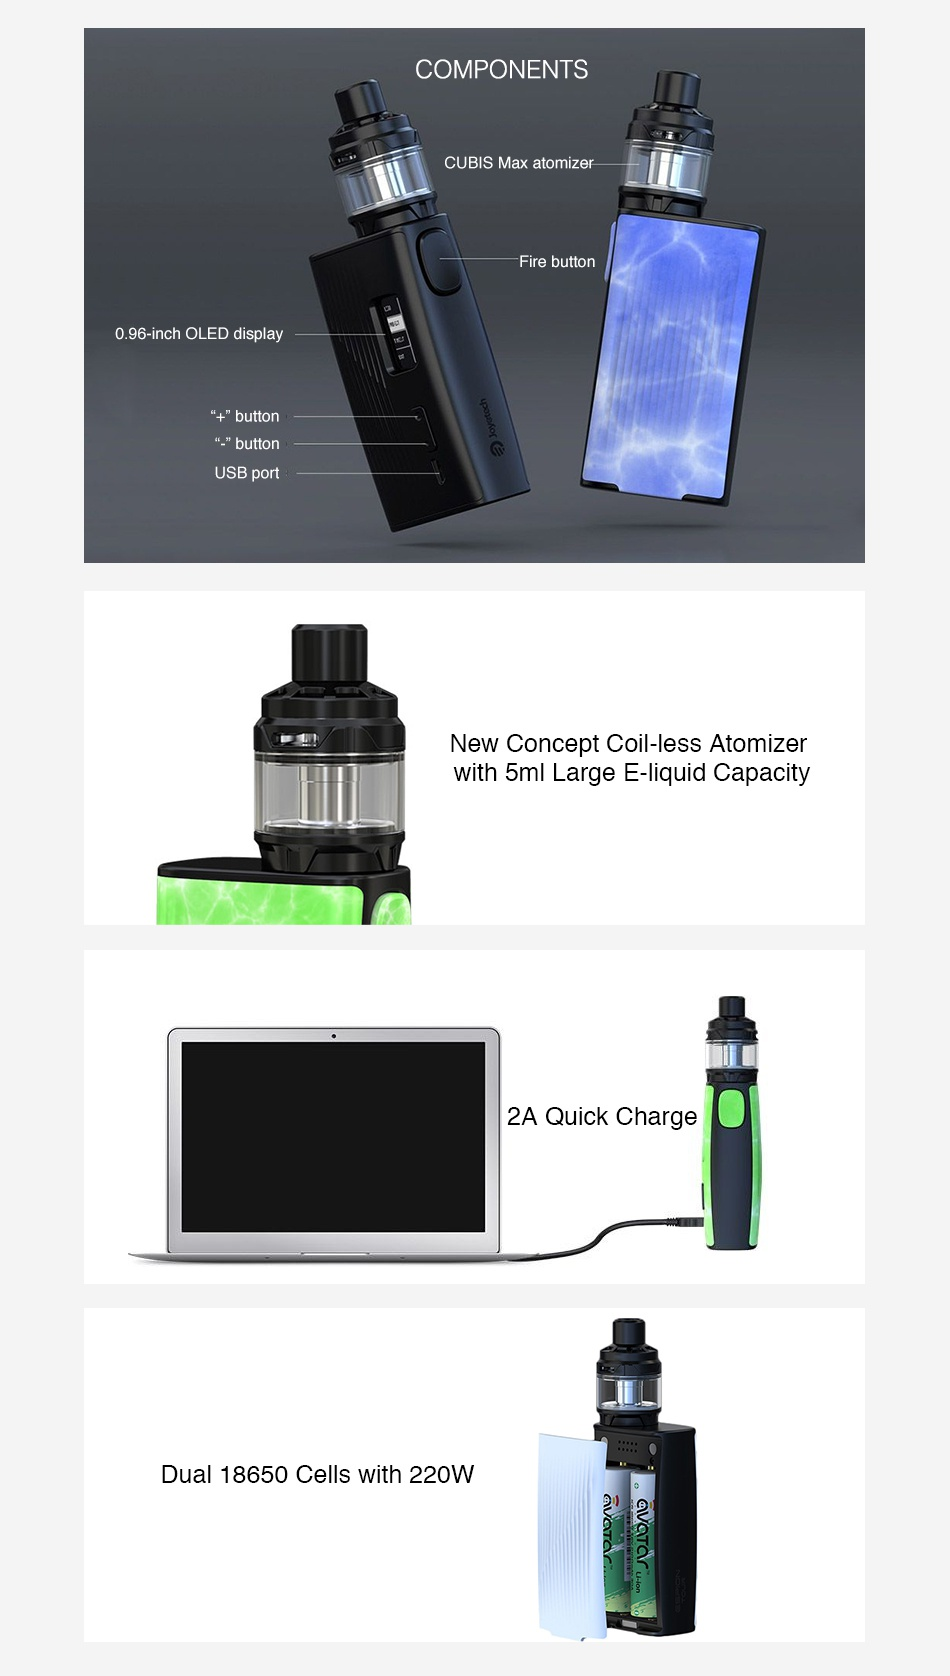 Joyetech ESPION Tour 220W TC Kit with Cubis Max COMPONENTS CUBIS Max atomizer 0 96 inch OLED display button USB port New Concept coil less atomizer with 5ml Large E liquid capacity 2A Quick Charge Dual 18650 Cells with 220W